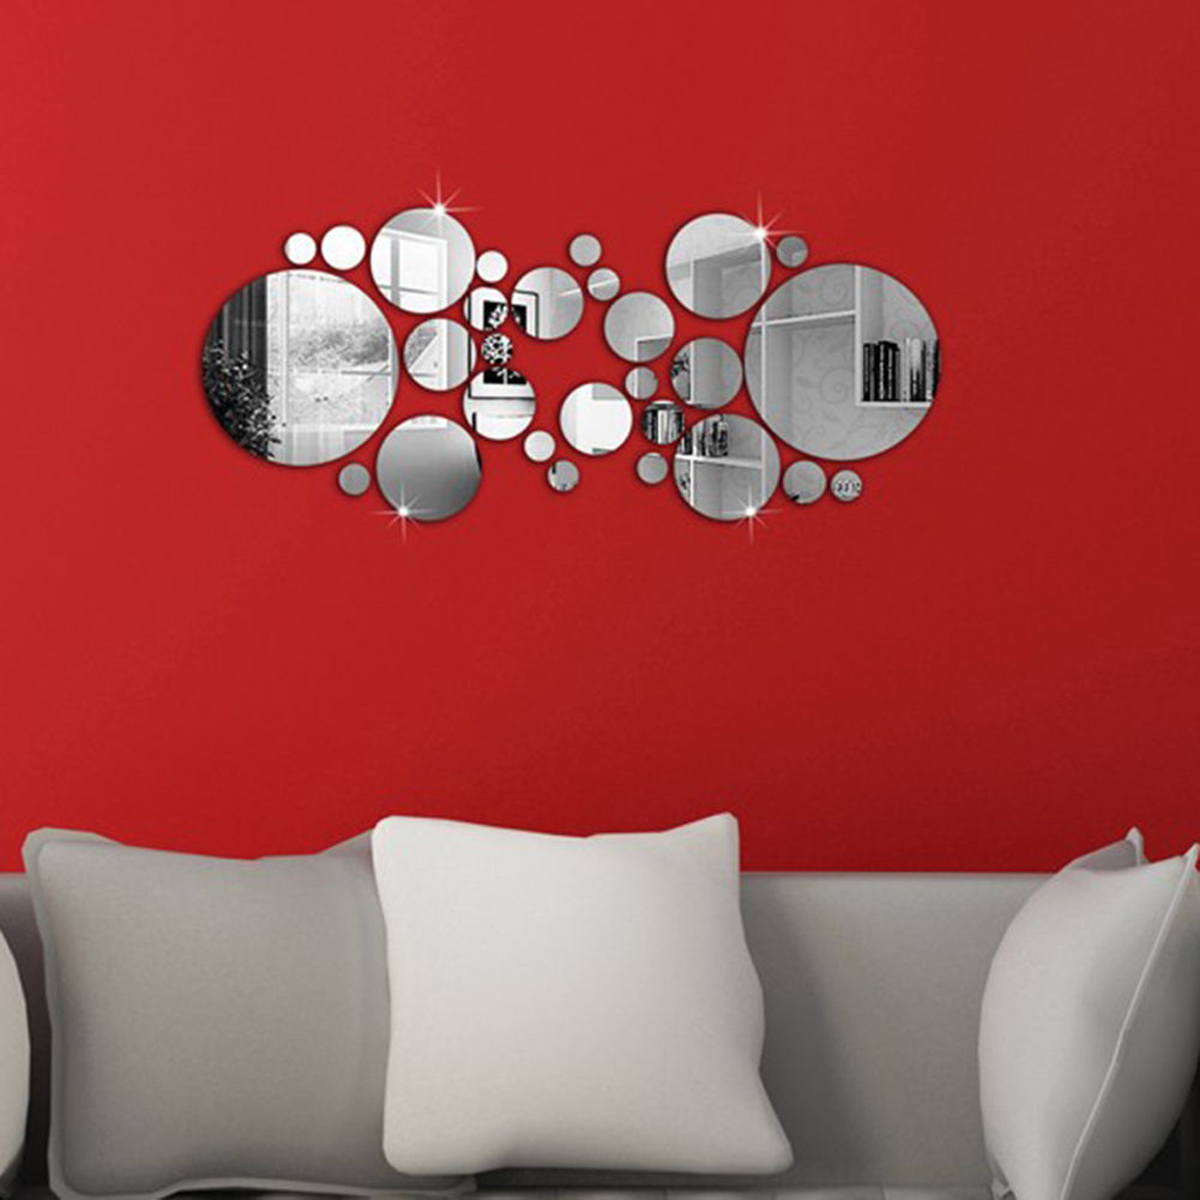 28Pcs/set 3D Modern Mirror Wall Stickers Silver Acrylic DIY Mural Decal Home Living Room Bedroom Art Decor Removable